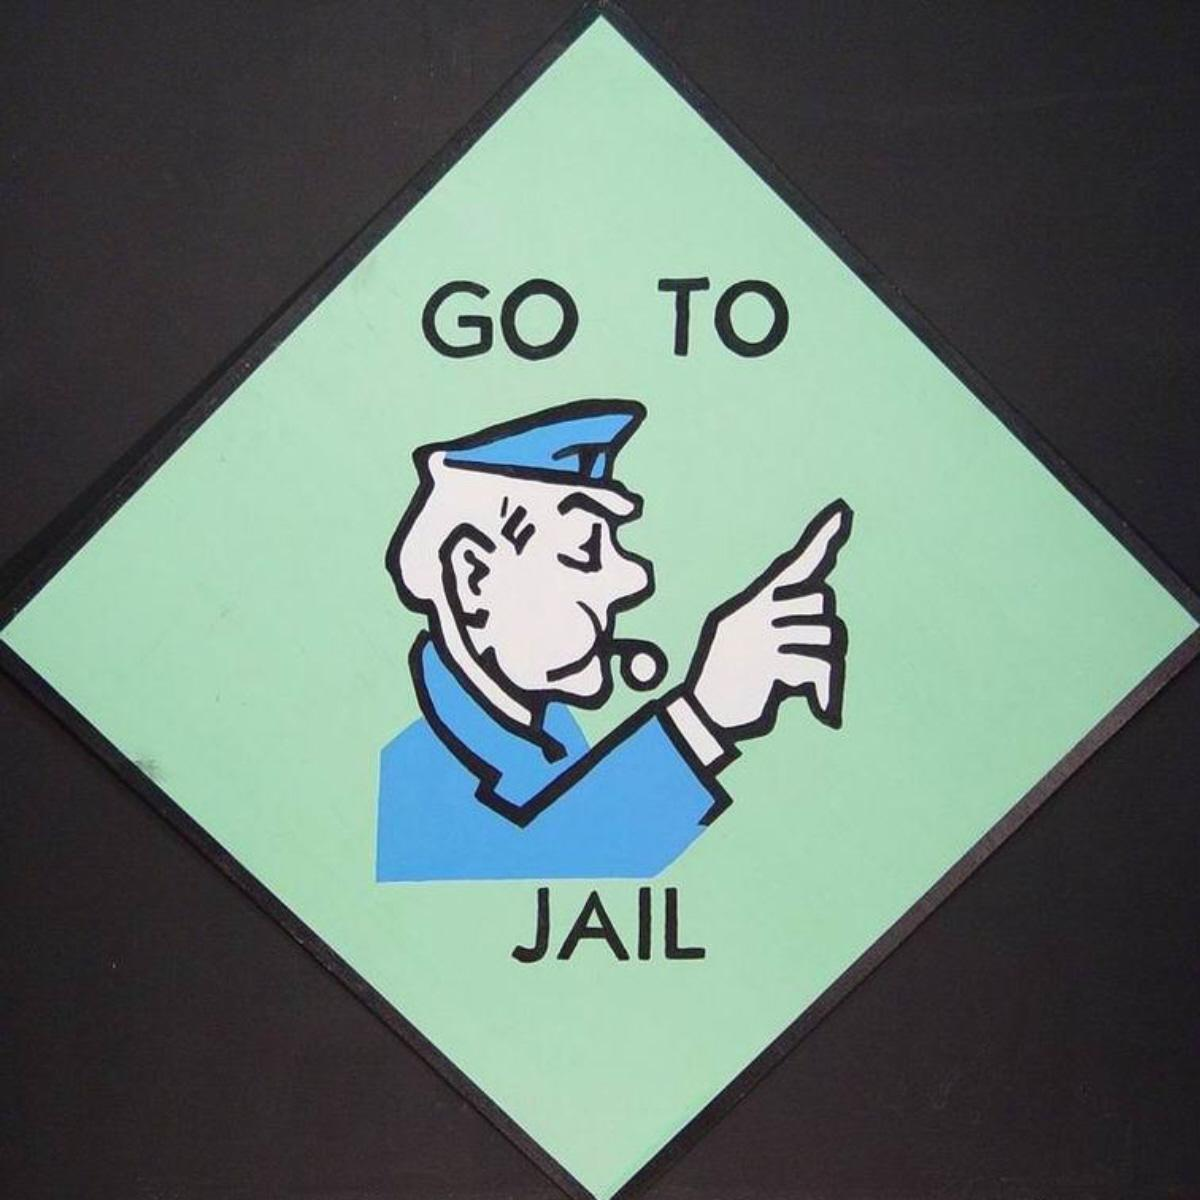 Prison clipart monopoly jail Will Free jail Art Third